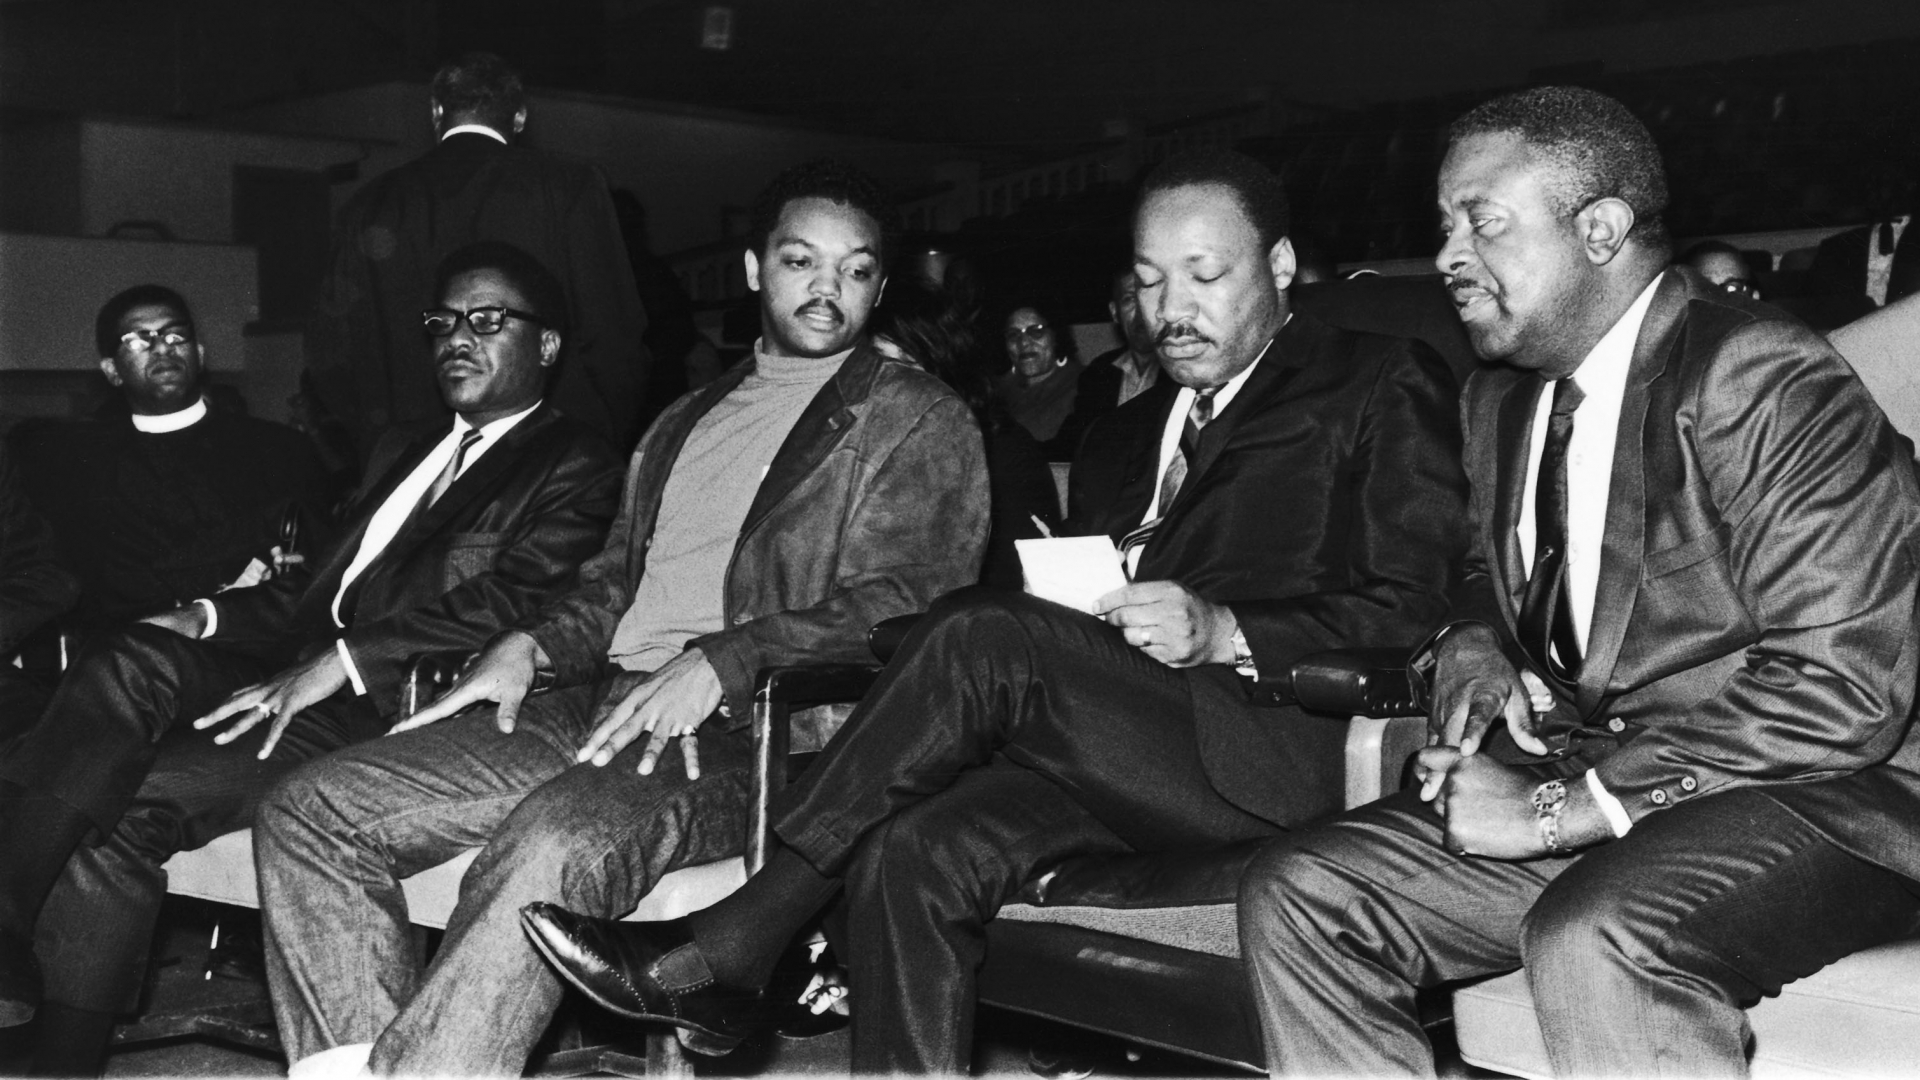 Jesse Jackson sitting on Martin Luther King, Jr.'s right-hand side, while looking over notes before King's famous 'Mountaintop' speech, which would be his last. (Credit: Maurice Sorrell/Ebony Collection via AP Images)